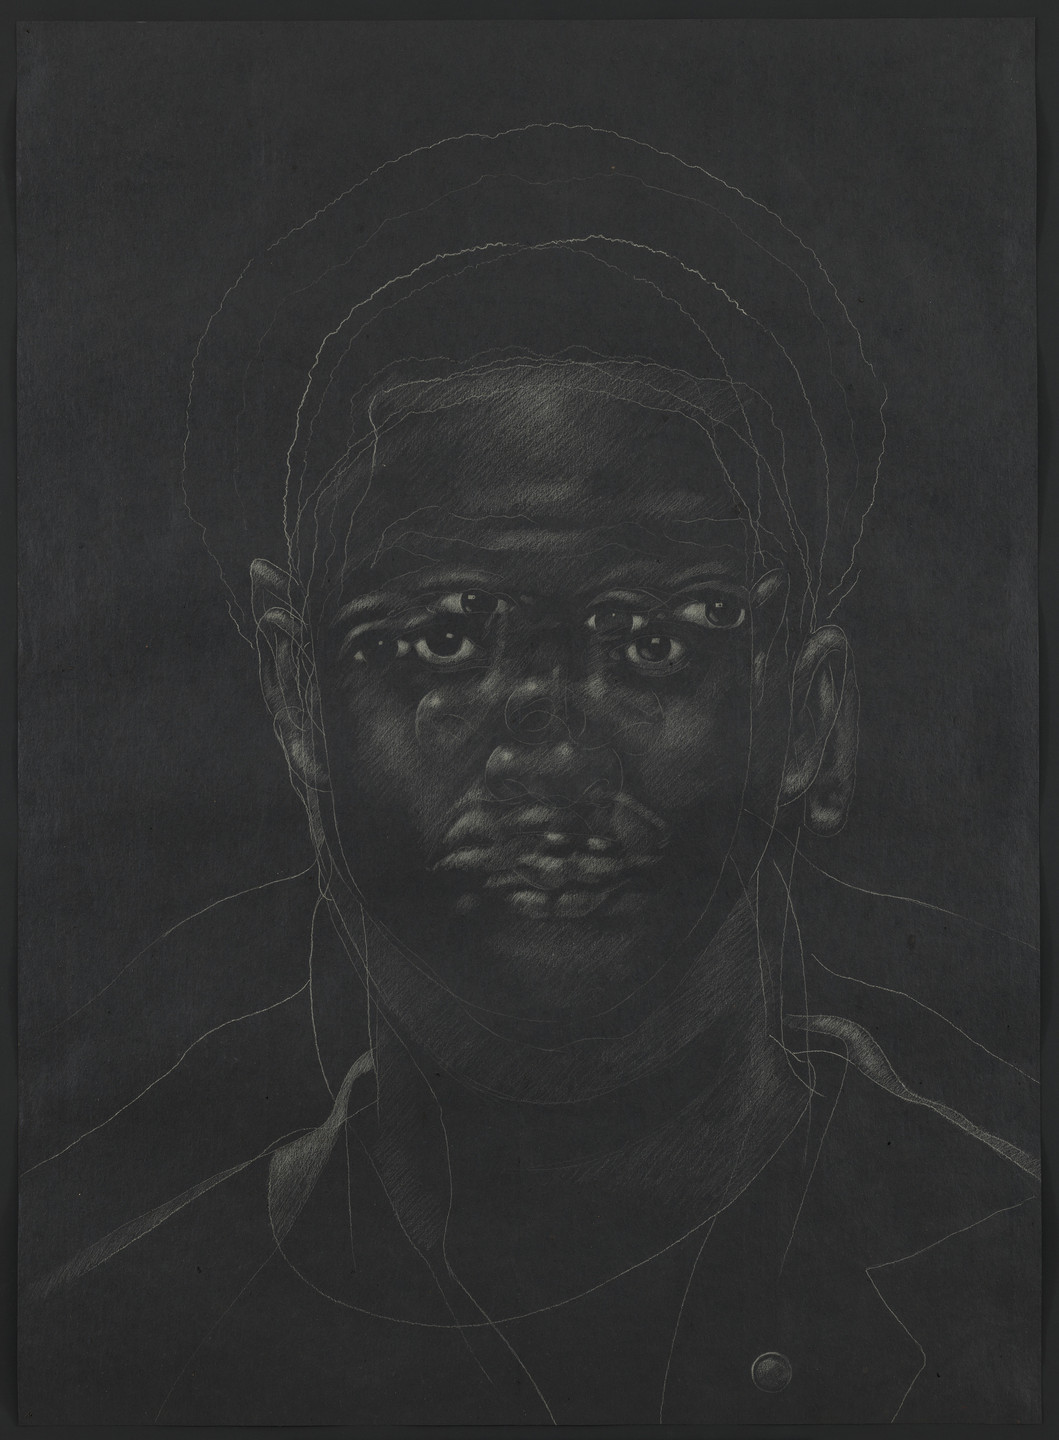 Titus Kaphar. The Jerome Project (Asphalt and Chalk) XV. 2015